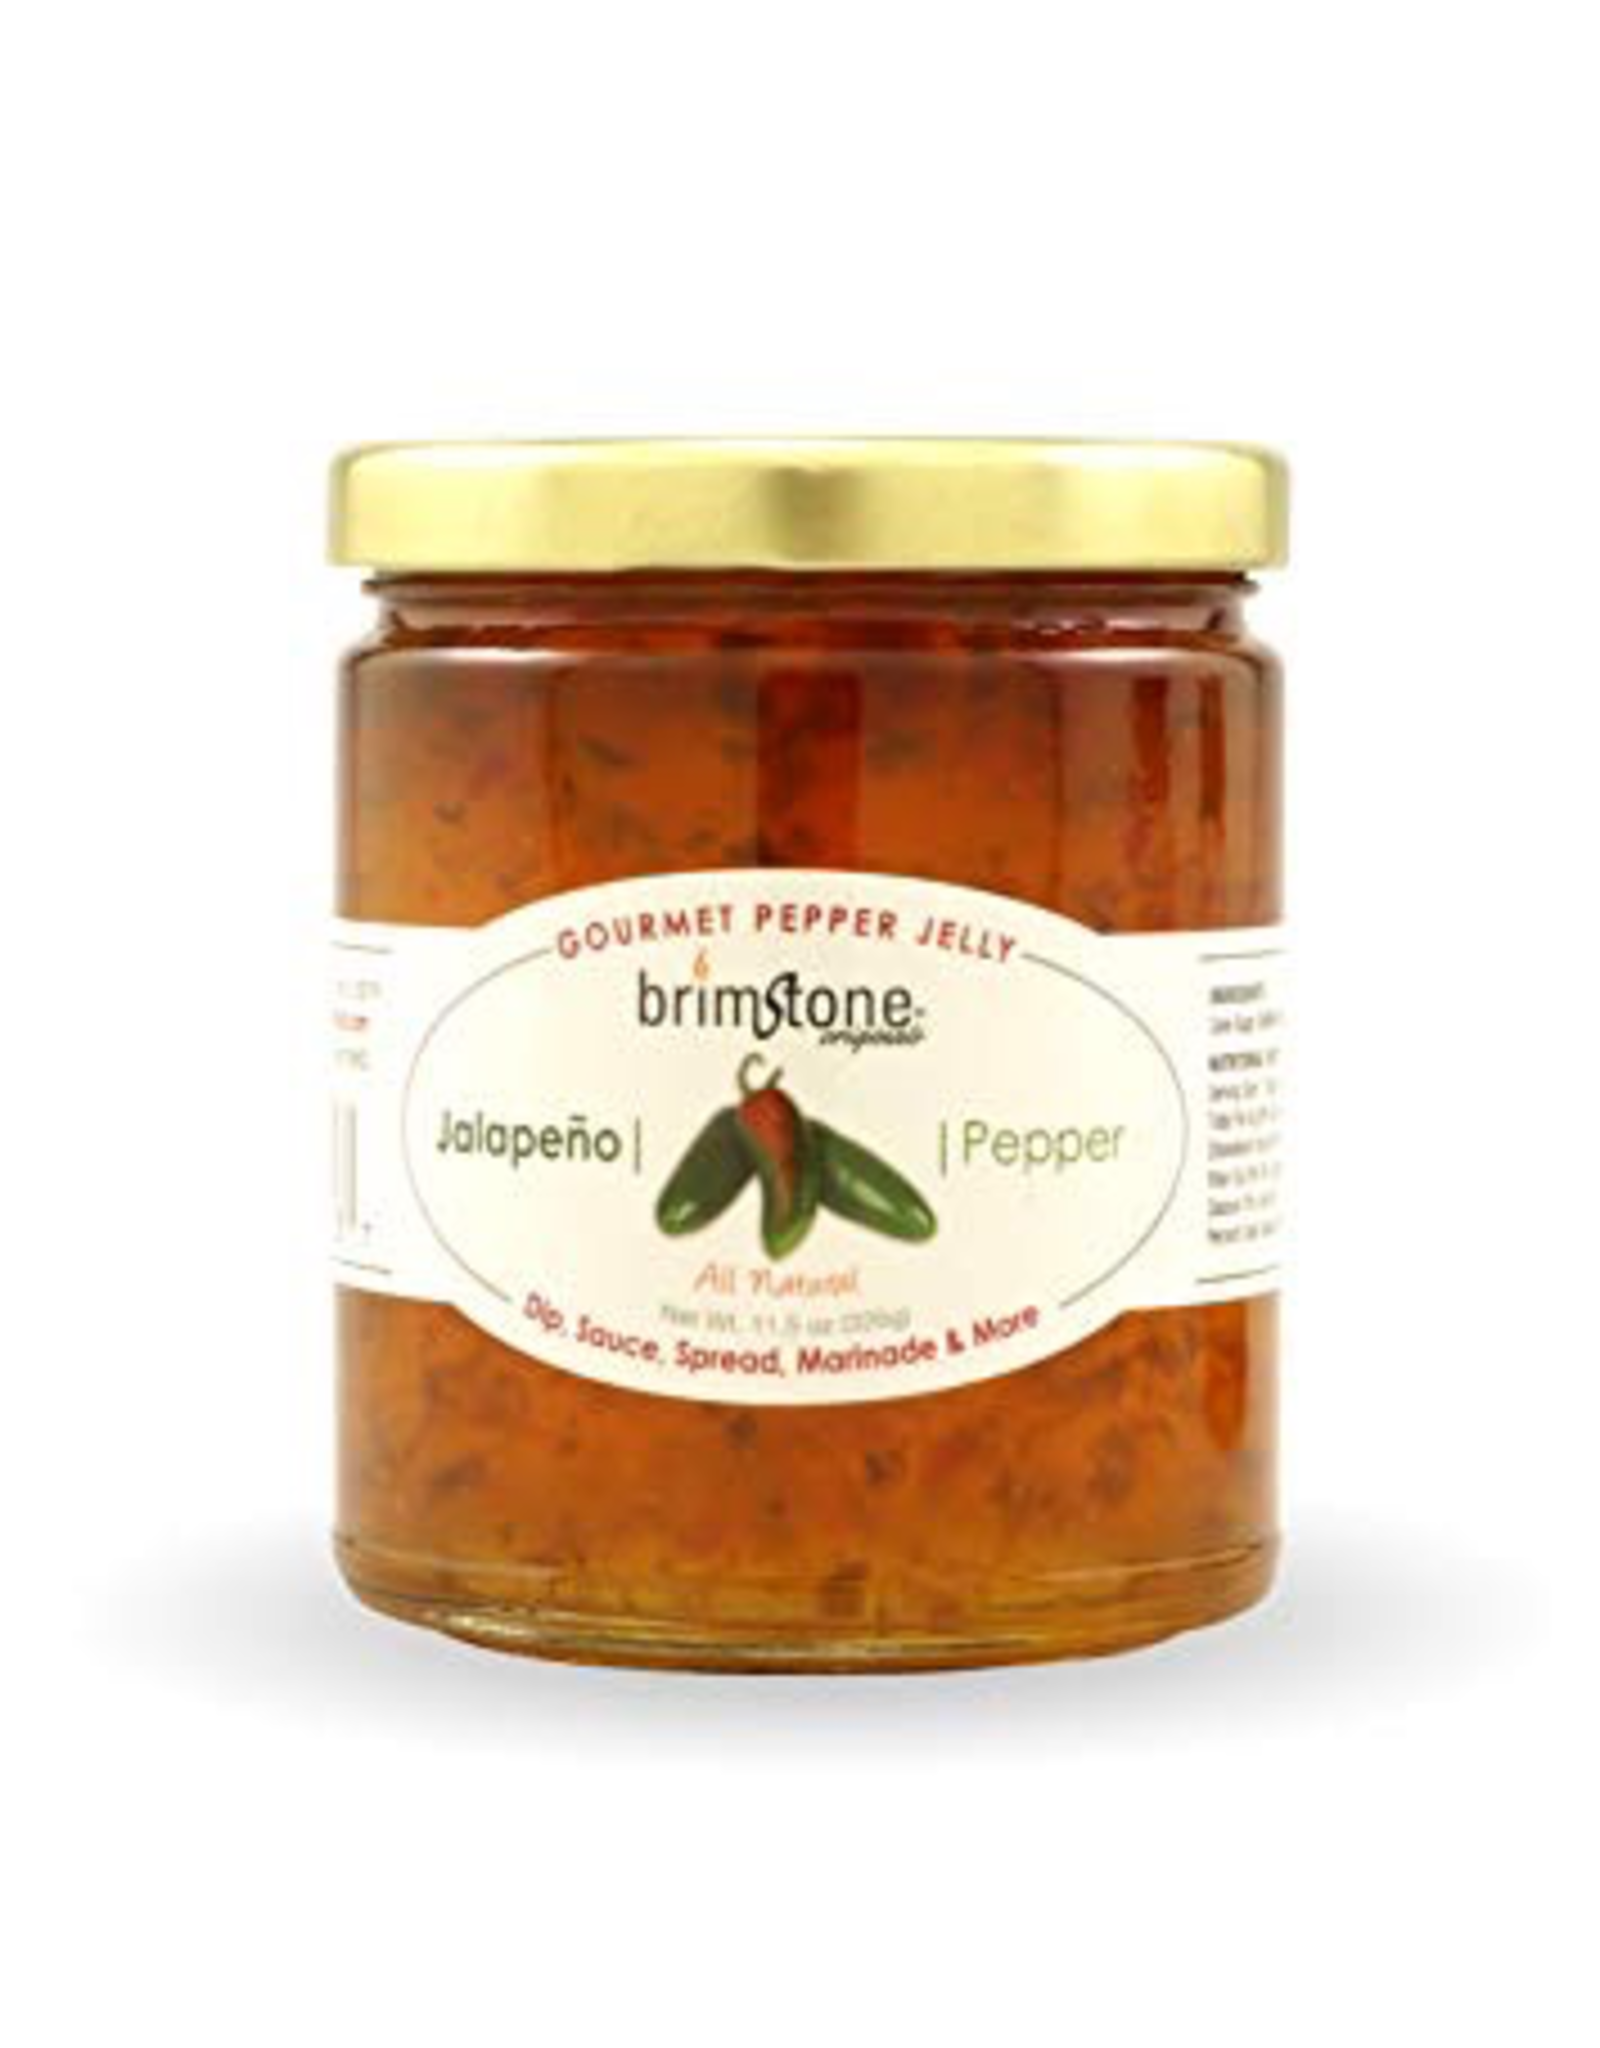 Specialty Foods Brimstone Pepper Jelly, Jalepeno Pepper, USA, 11.5oz.